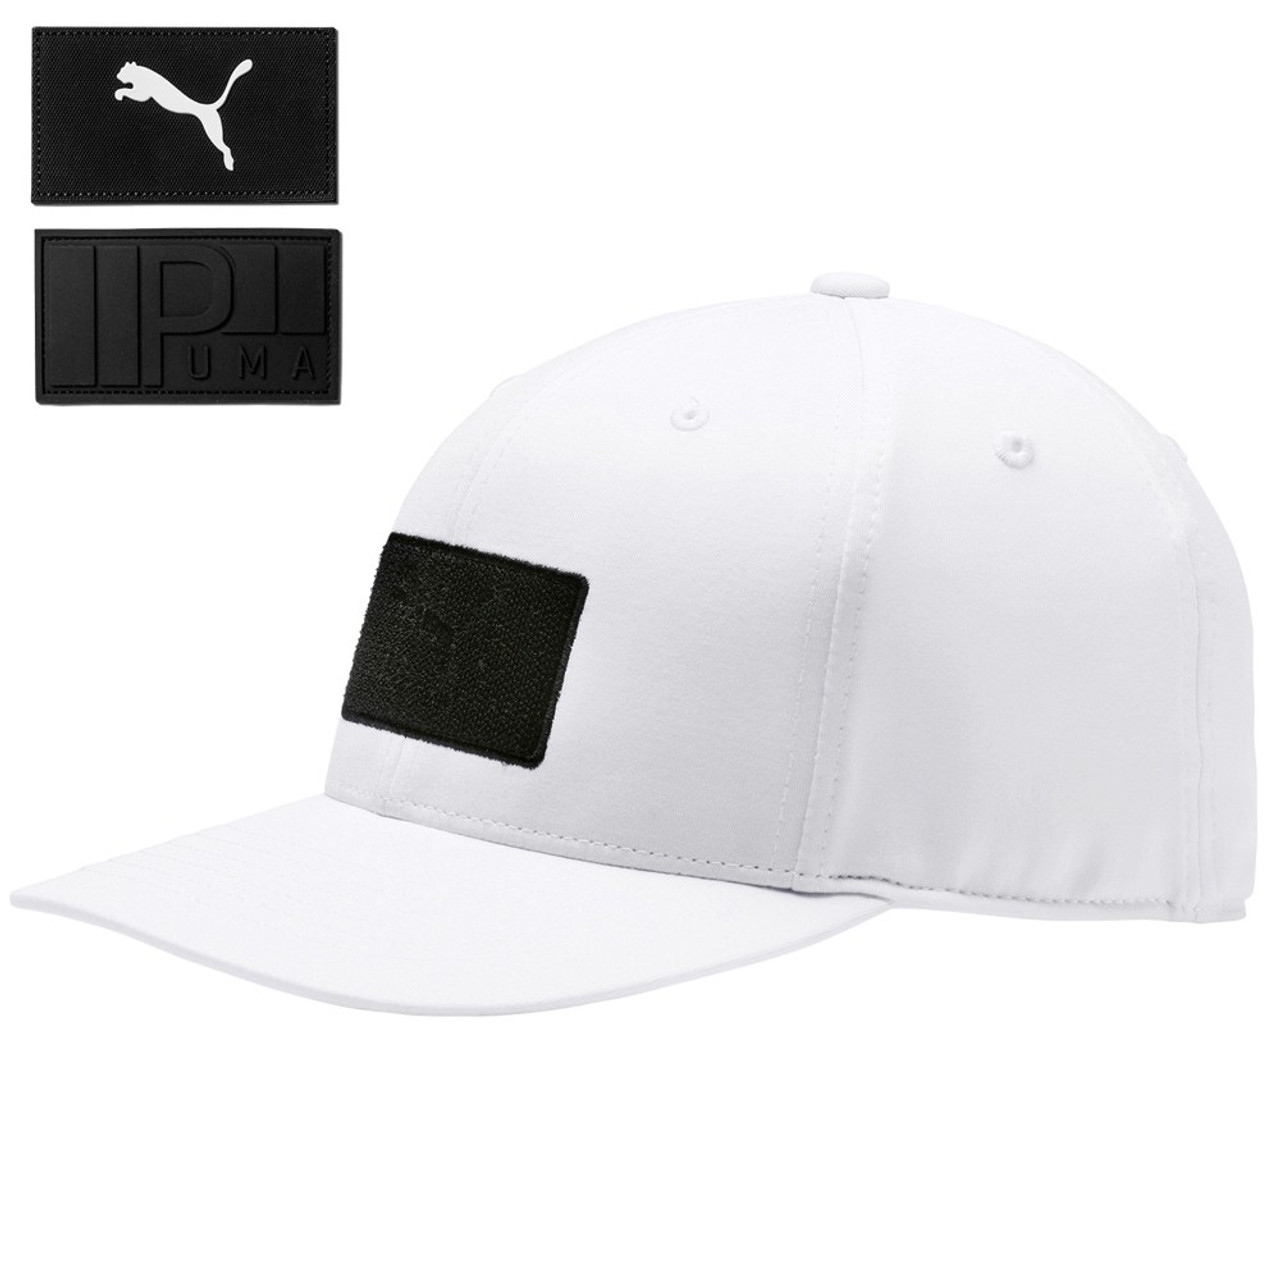 Puma Utility Patch 110 Snapback Cap - Bright White